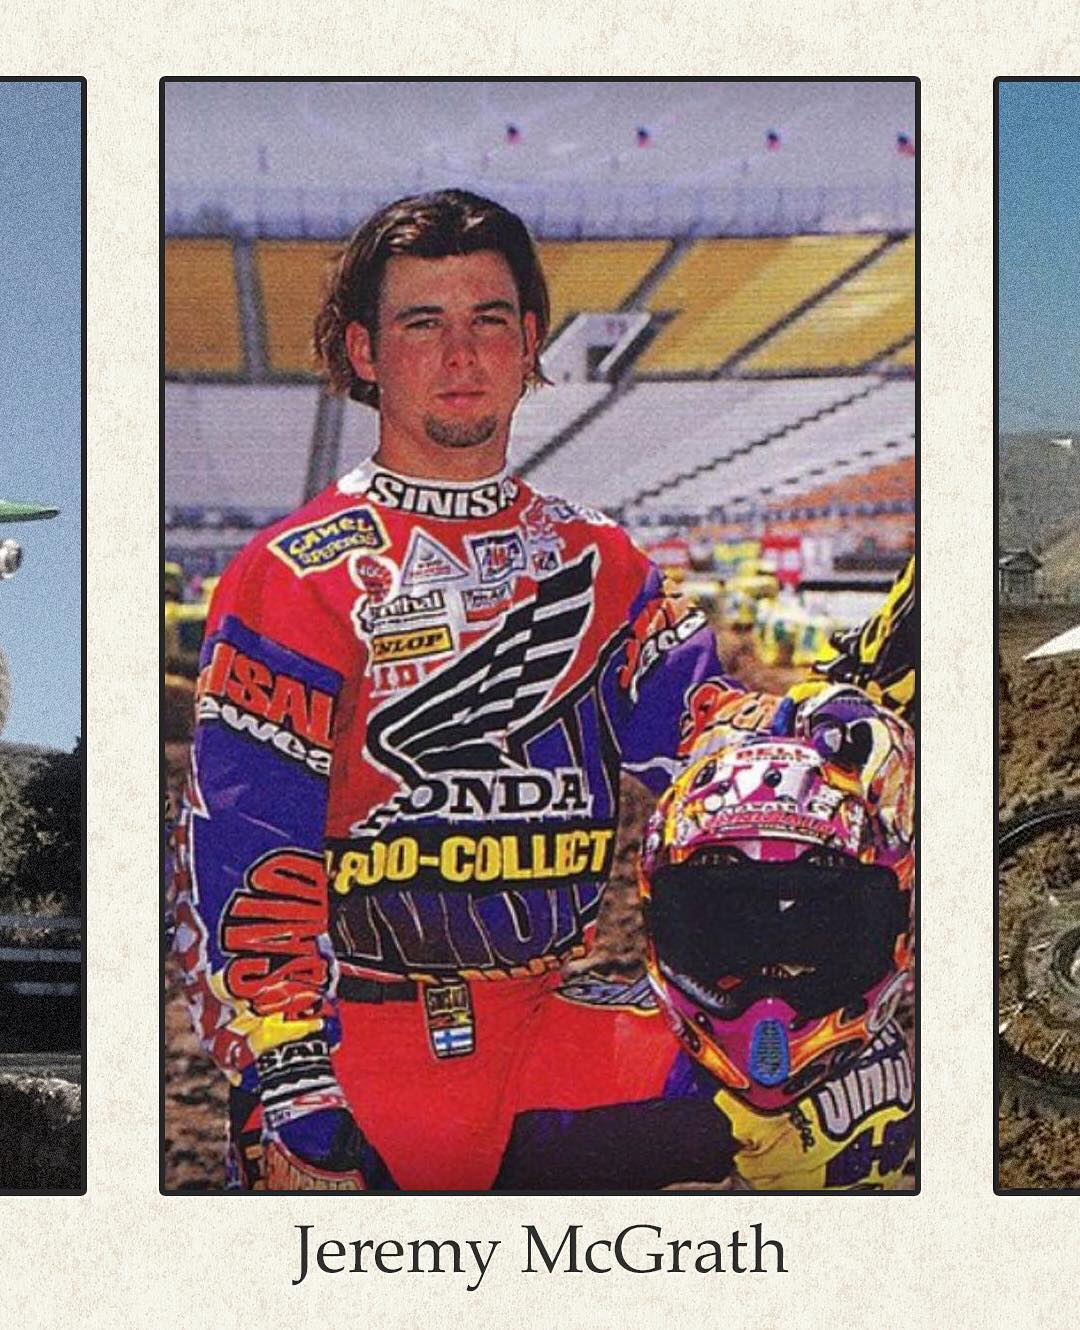 Voted Most Likely to ____________. @jeremymcgrath2 #tbt . . GIVEAWAY: For the entire month of September we want to see your (or your friends) most epic throwback pictures! Every #tbt SPY will repost the winning photo and giveaway one of our brand new...